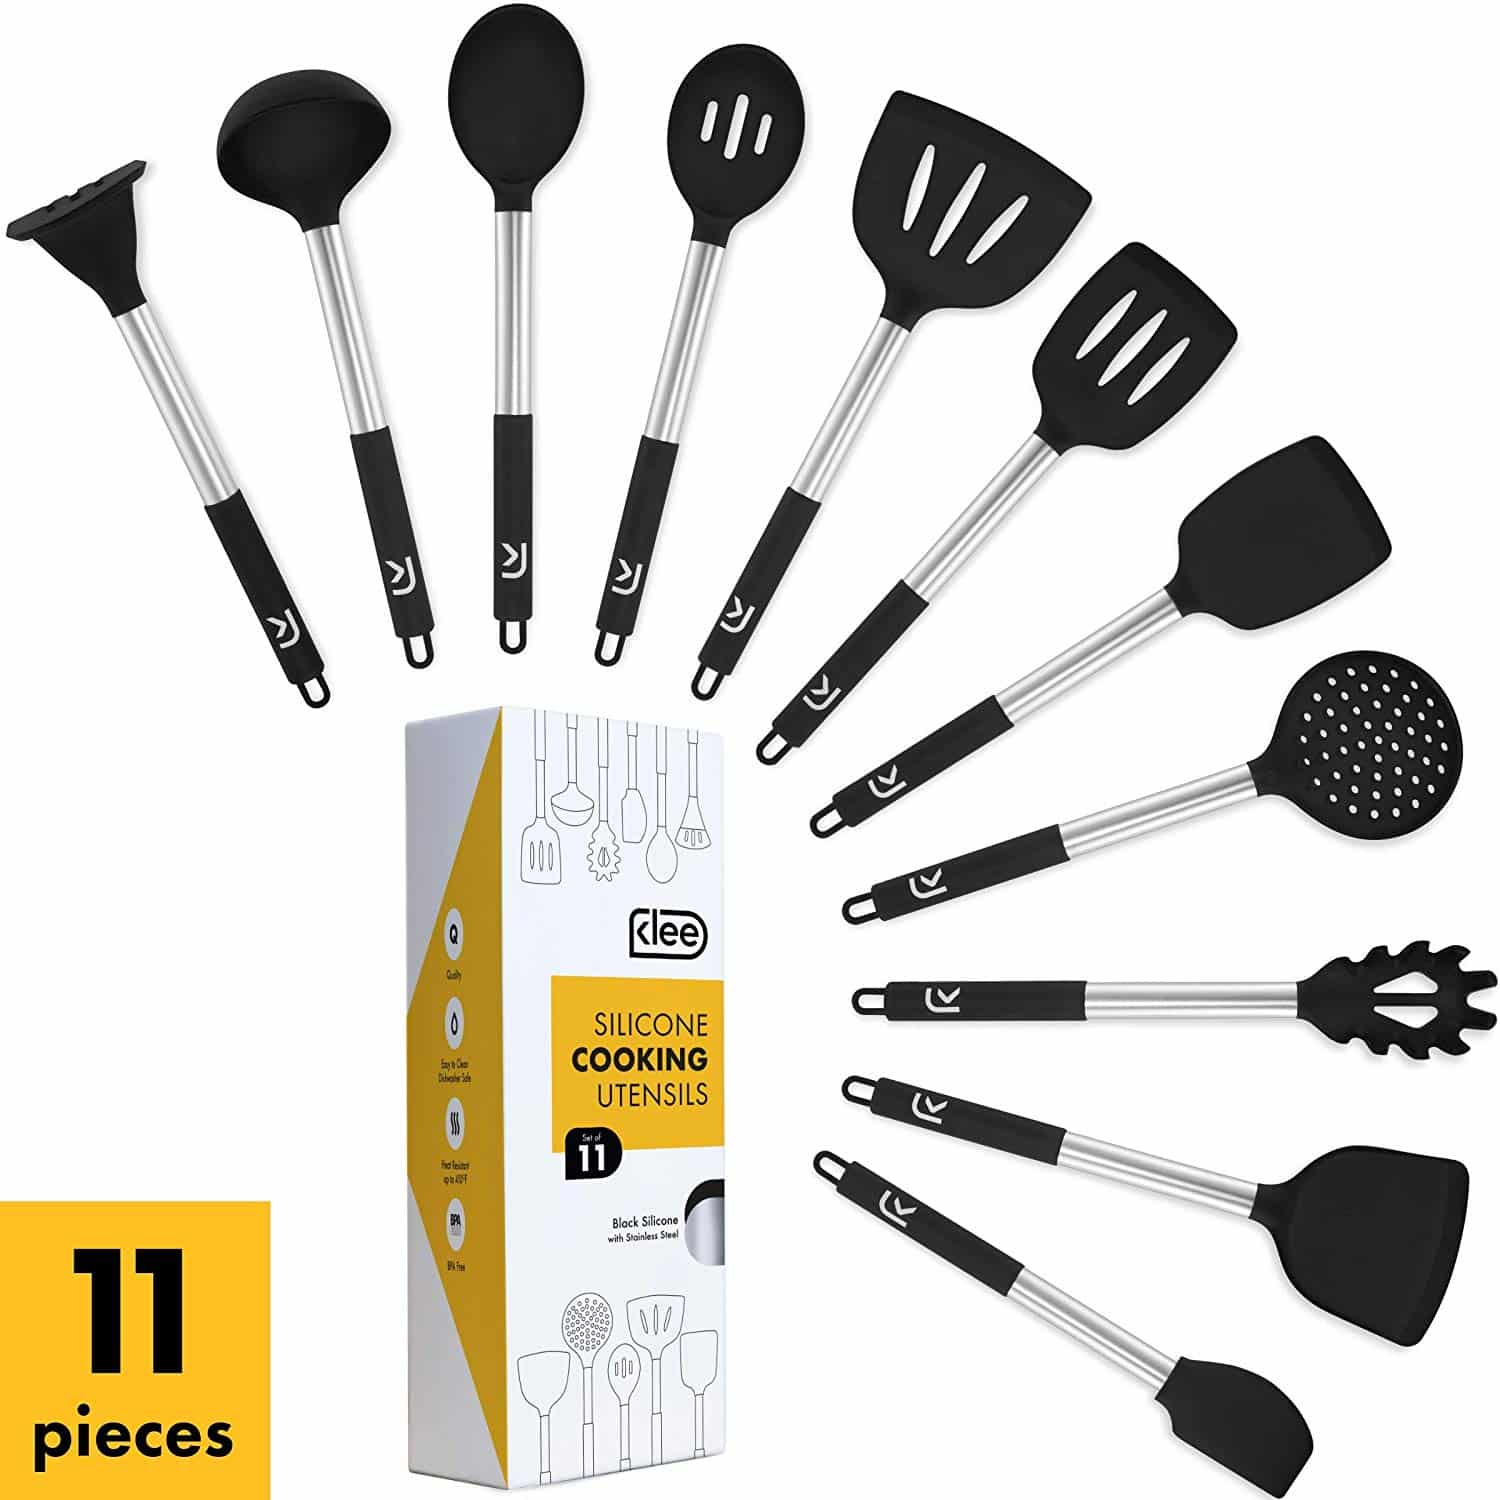 Klee 11 Piece Nonstick Kitchen Utensil Set